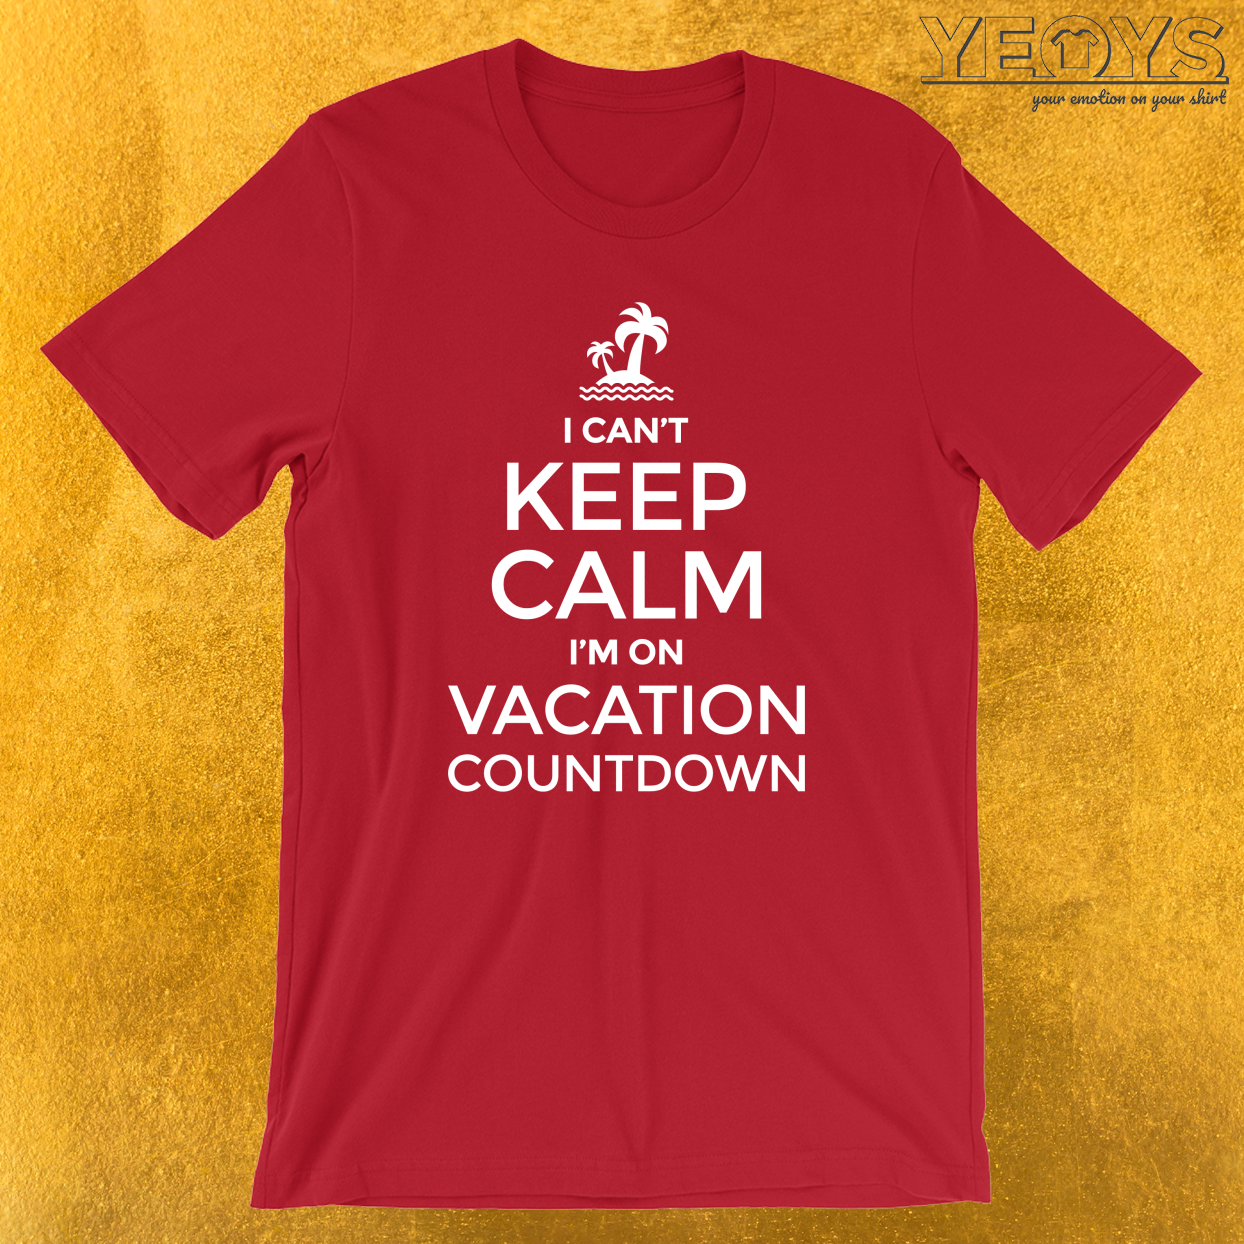 I Can't Keep Calm I'm On Vacation Countdown T-Shirt